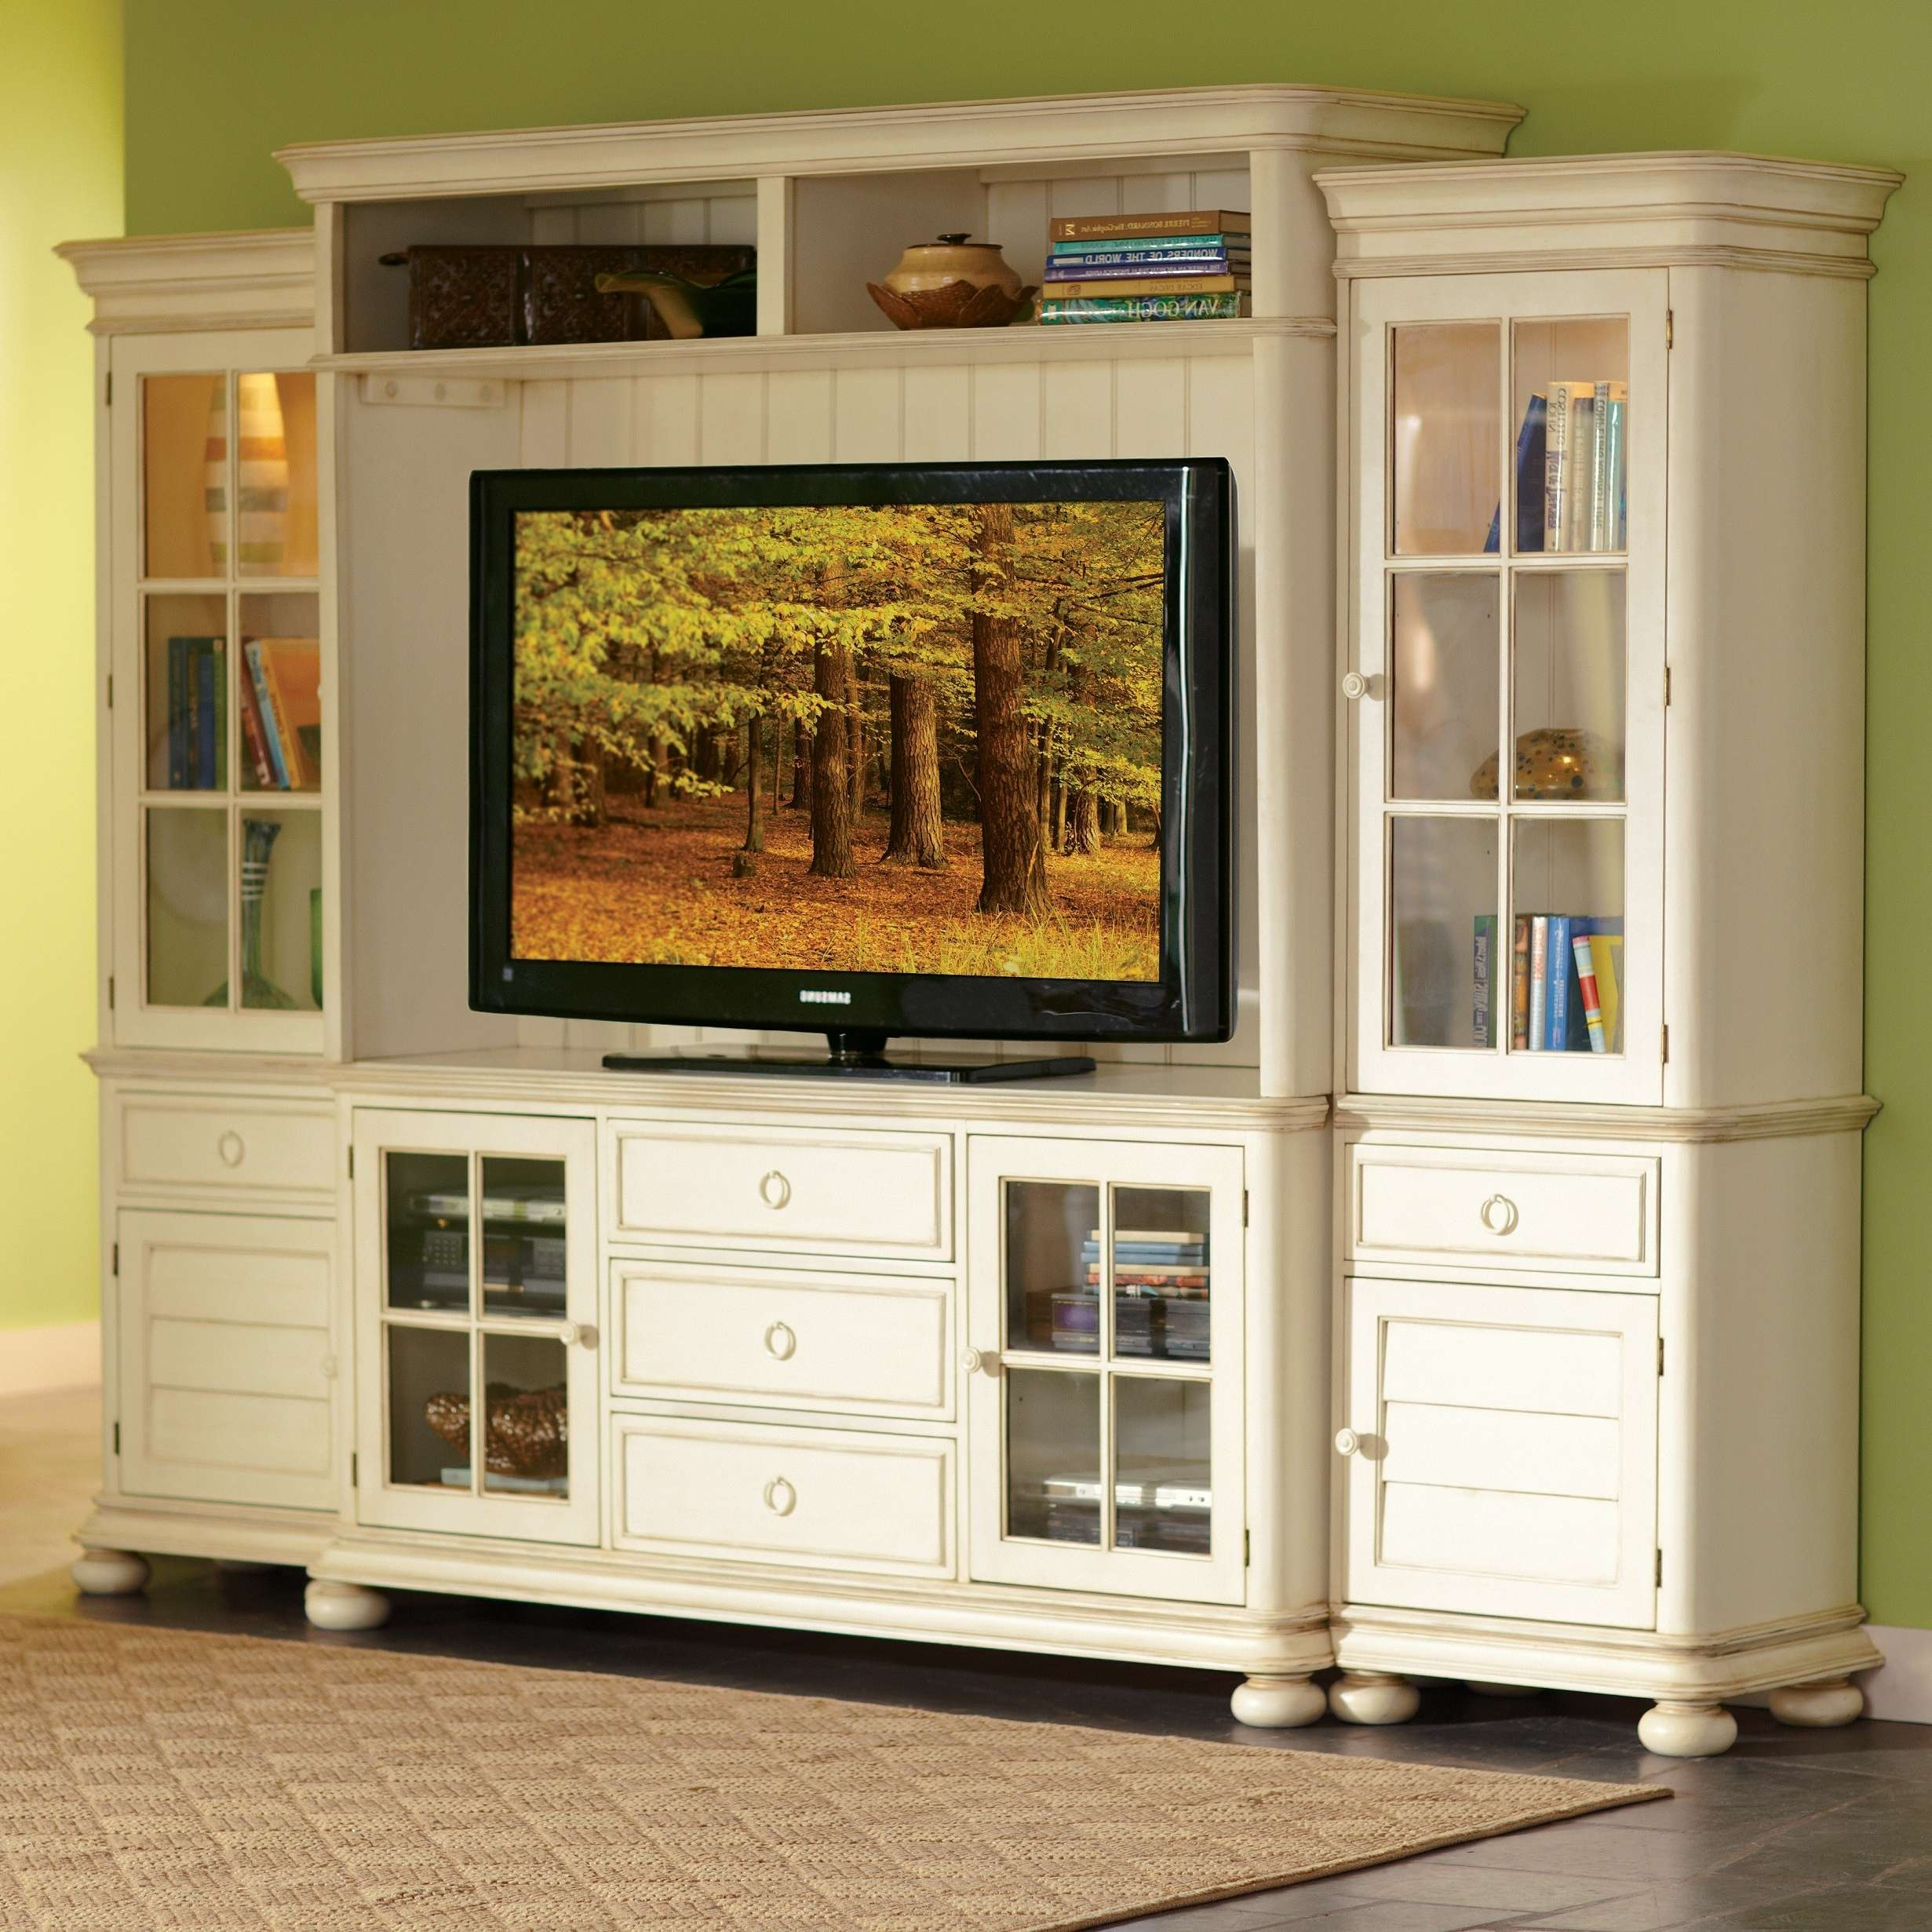 Vintage White Mahogany Wood Media Cabinet With Glass Doors Storage Throughout Corner Tv Cabinets With Glass Doors (Gallery 15 of 20)